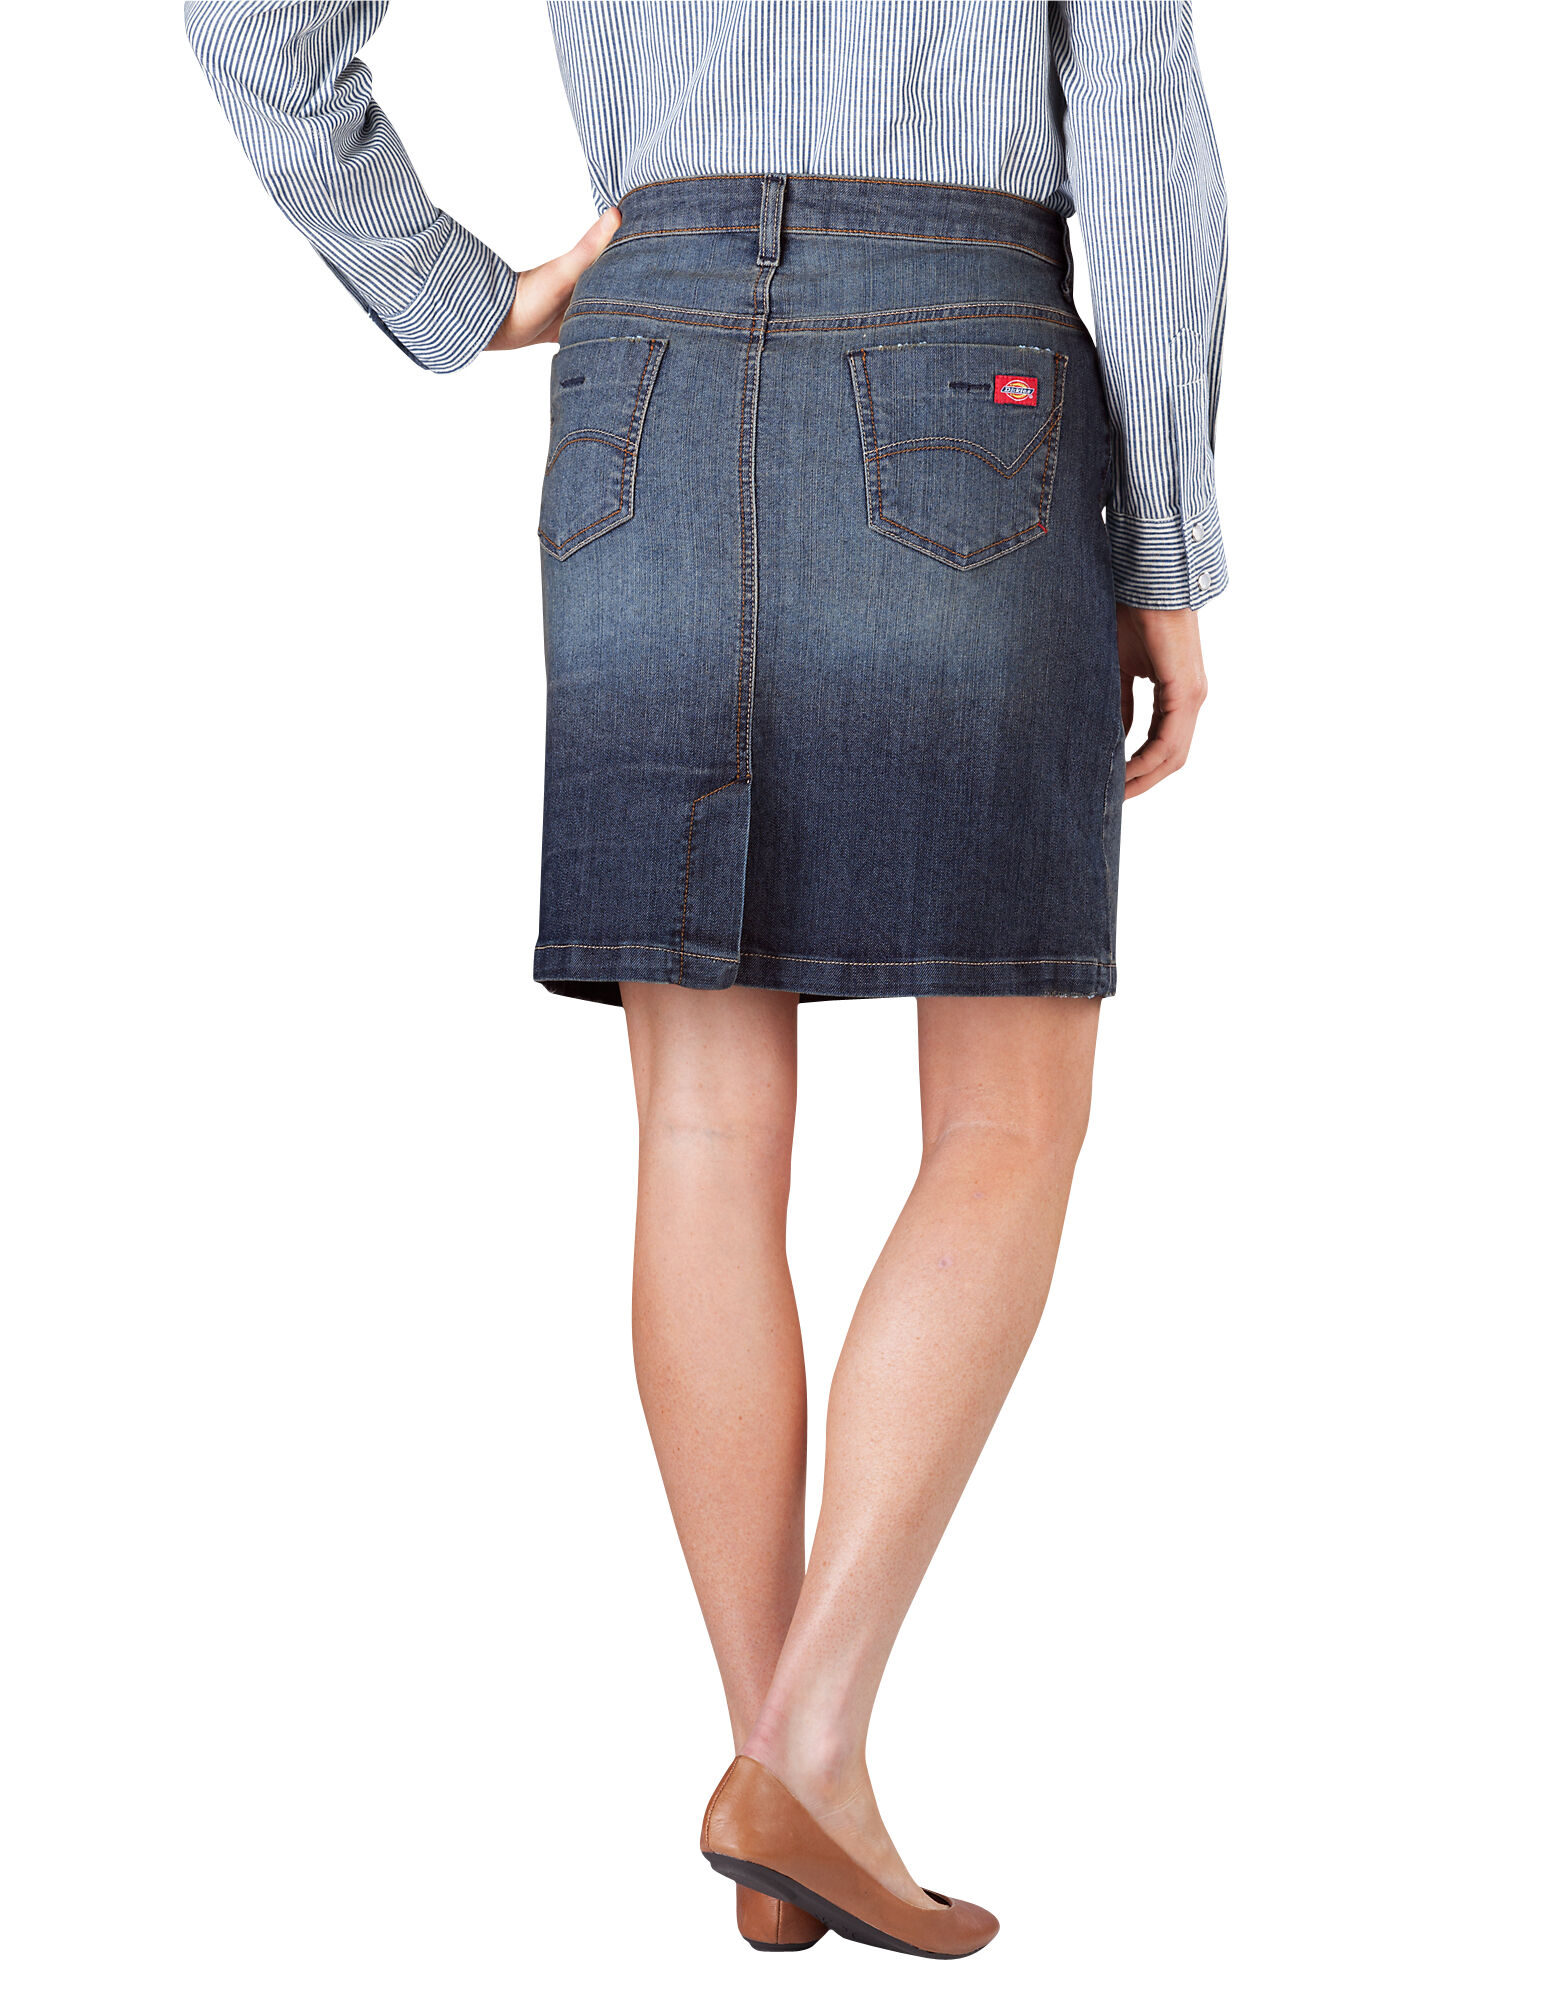 New 100 Long And Short Denim Skirt Outfits For Girls